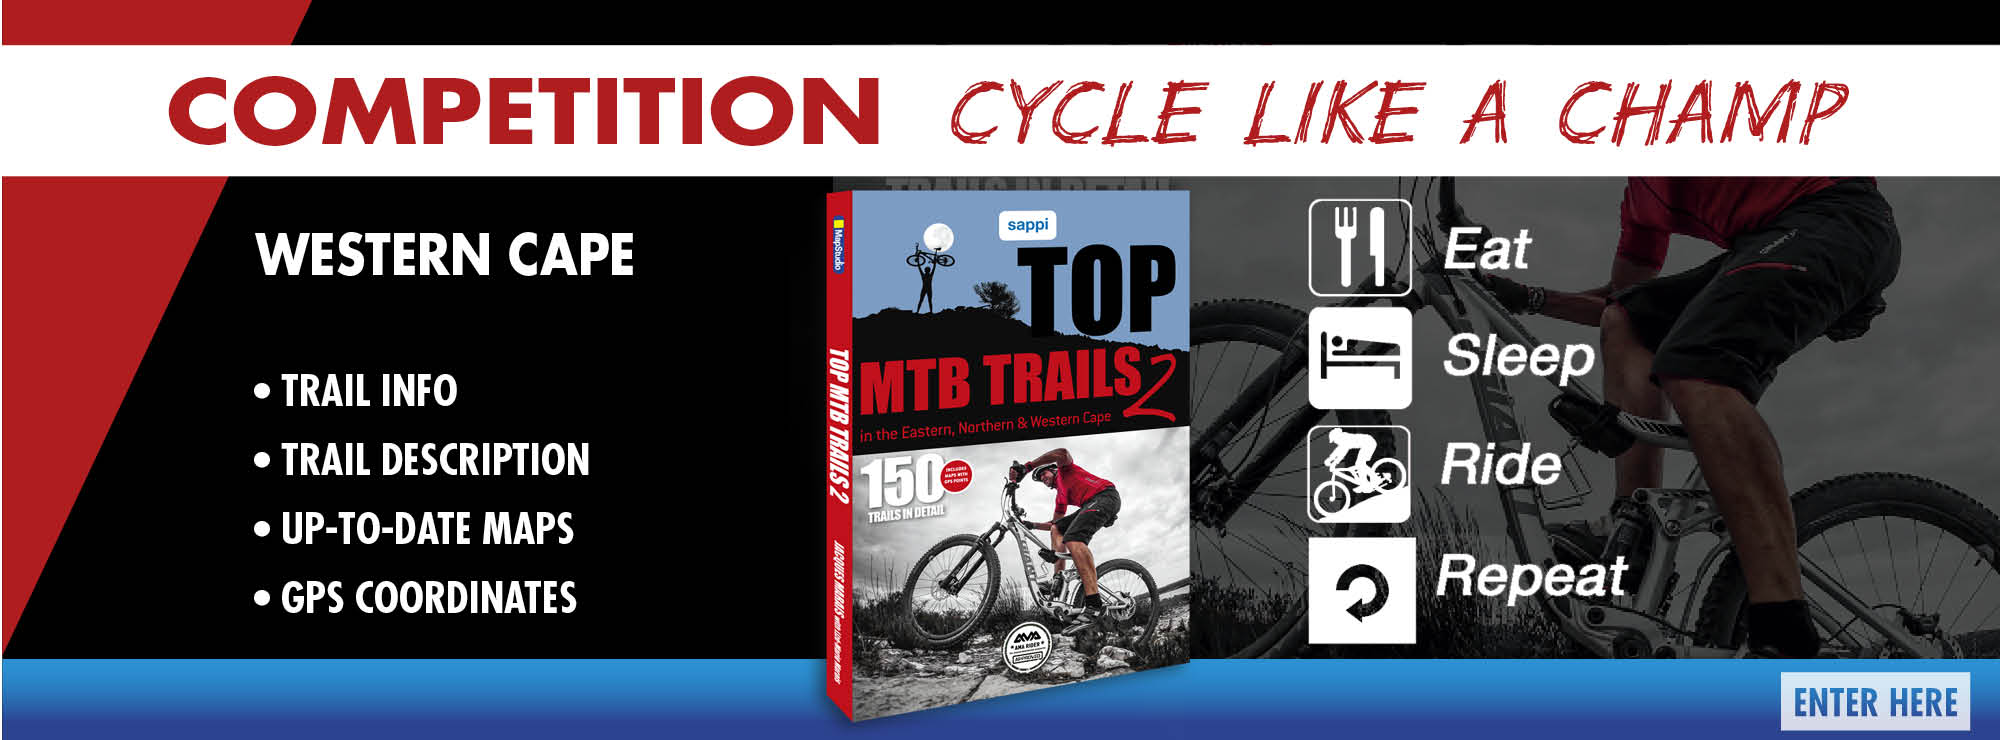 cycle_like_a_champ_competition